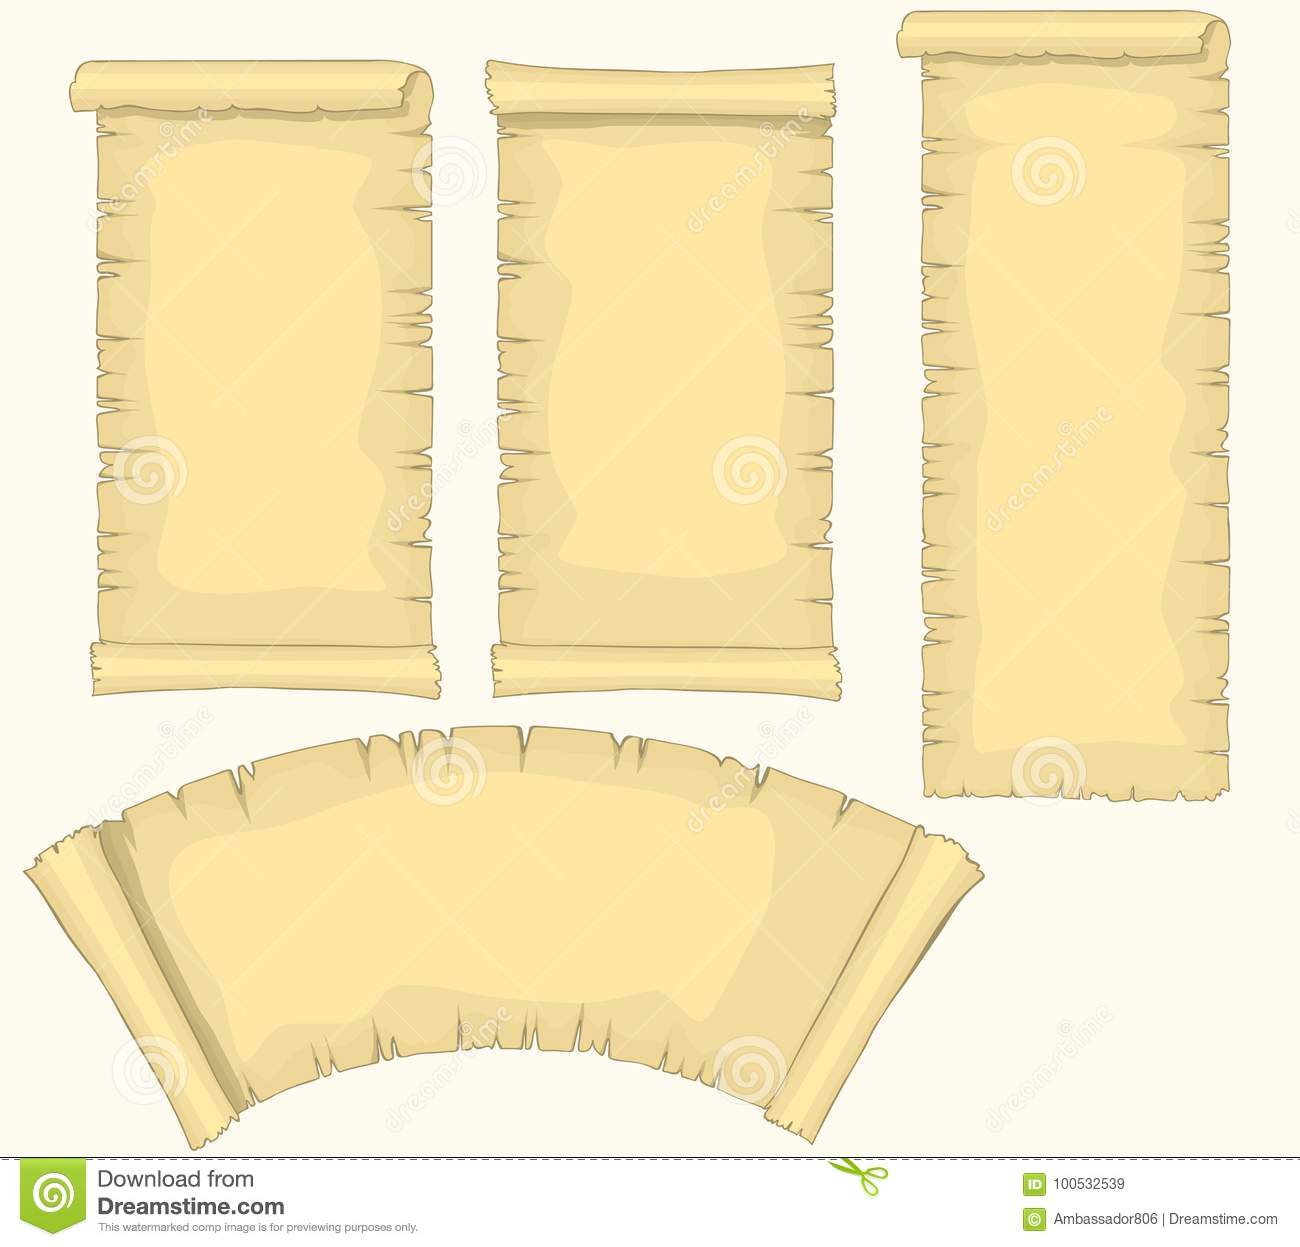 papyrus scrolls set aged blank paper scroll medieval yellowish